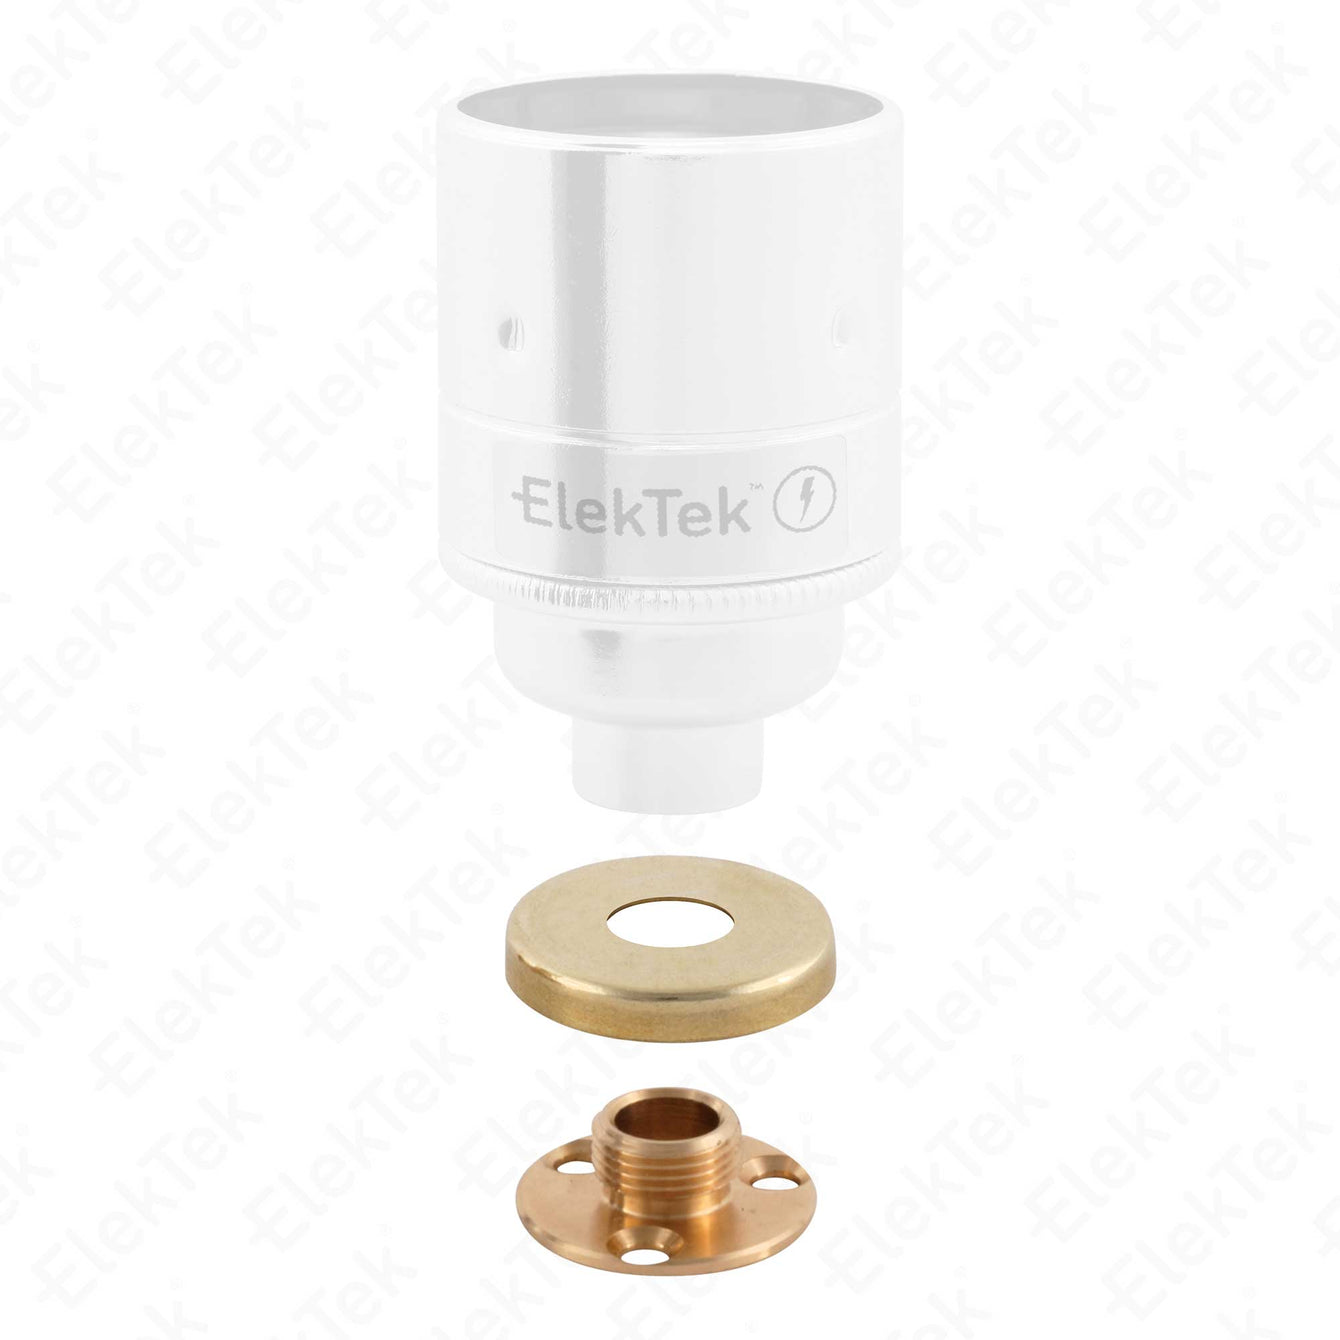 ElekTek Brass Back Plate Kit - 10mm Male Thread and Screws with Cover - For use with E27 10mm Lampholder Chrome